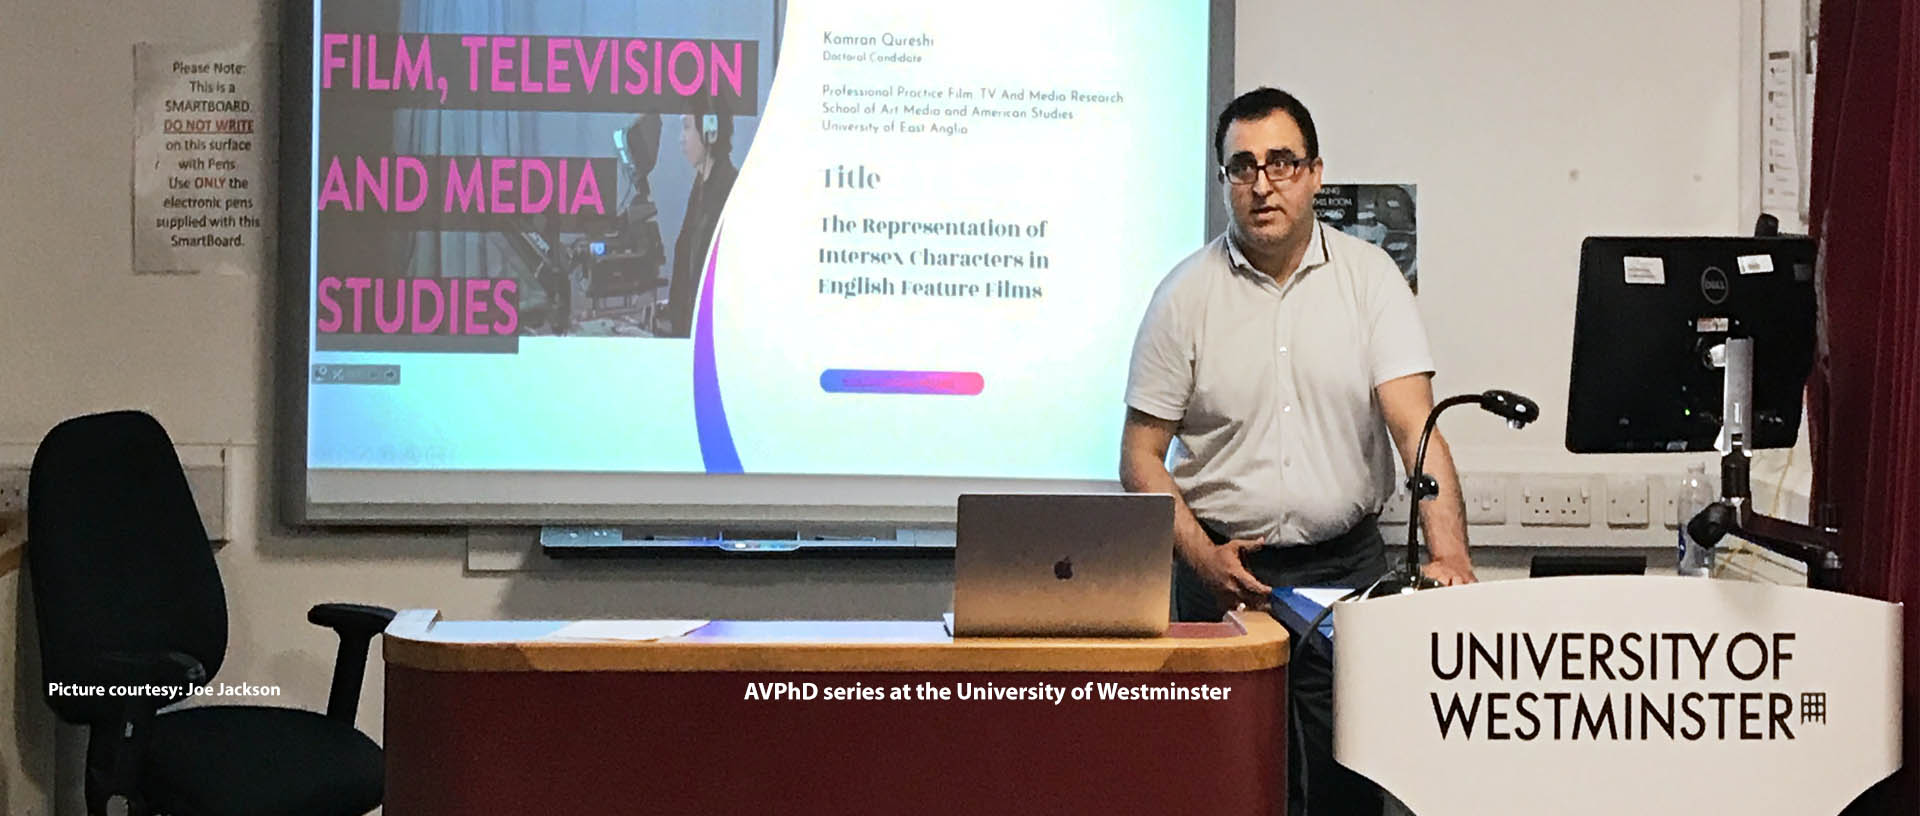 Doctoral research project presented at the University of Westminster